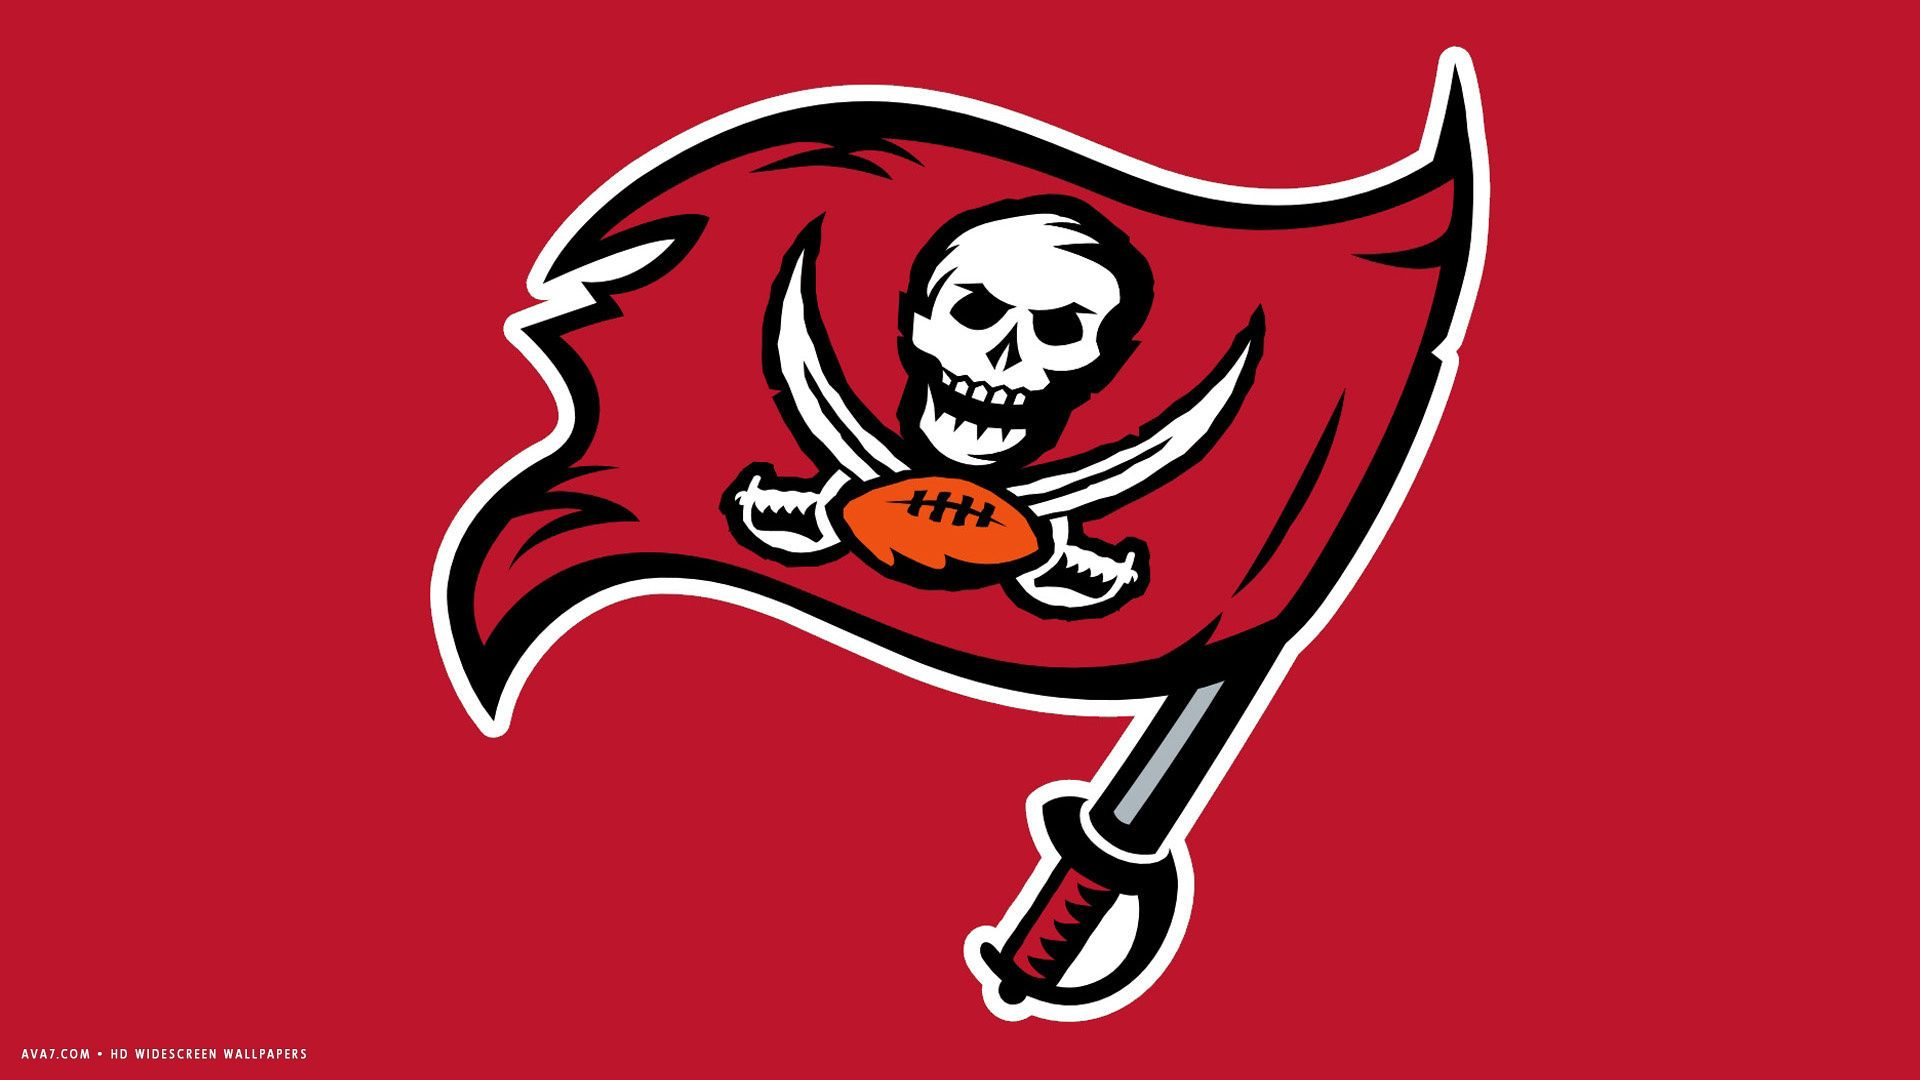 tampa bay buccaneers wallpapers top free tampa bay buccaneers backgrounds wallpaperaccess tampa bay buccaneers wallpapers top